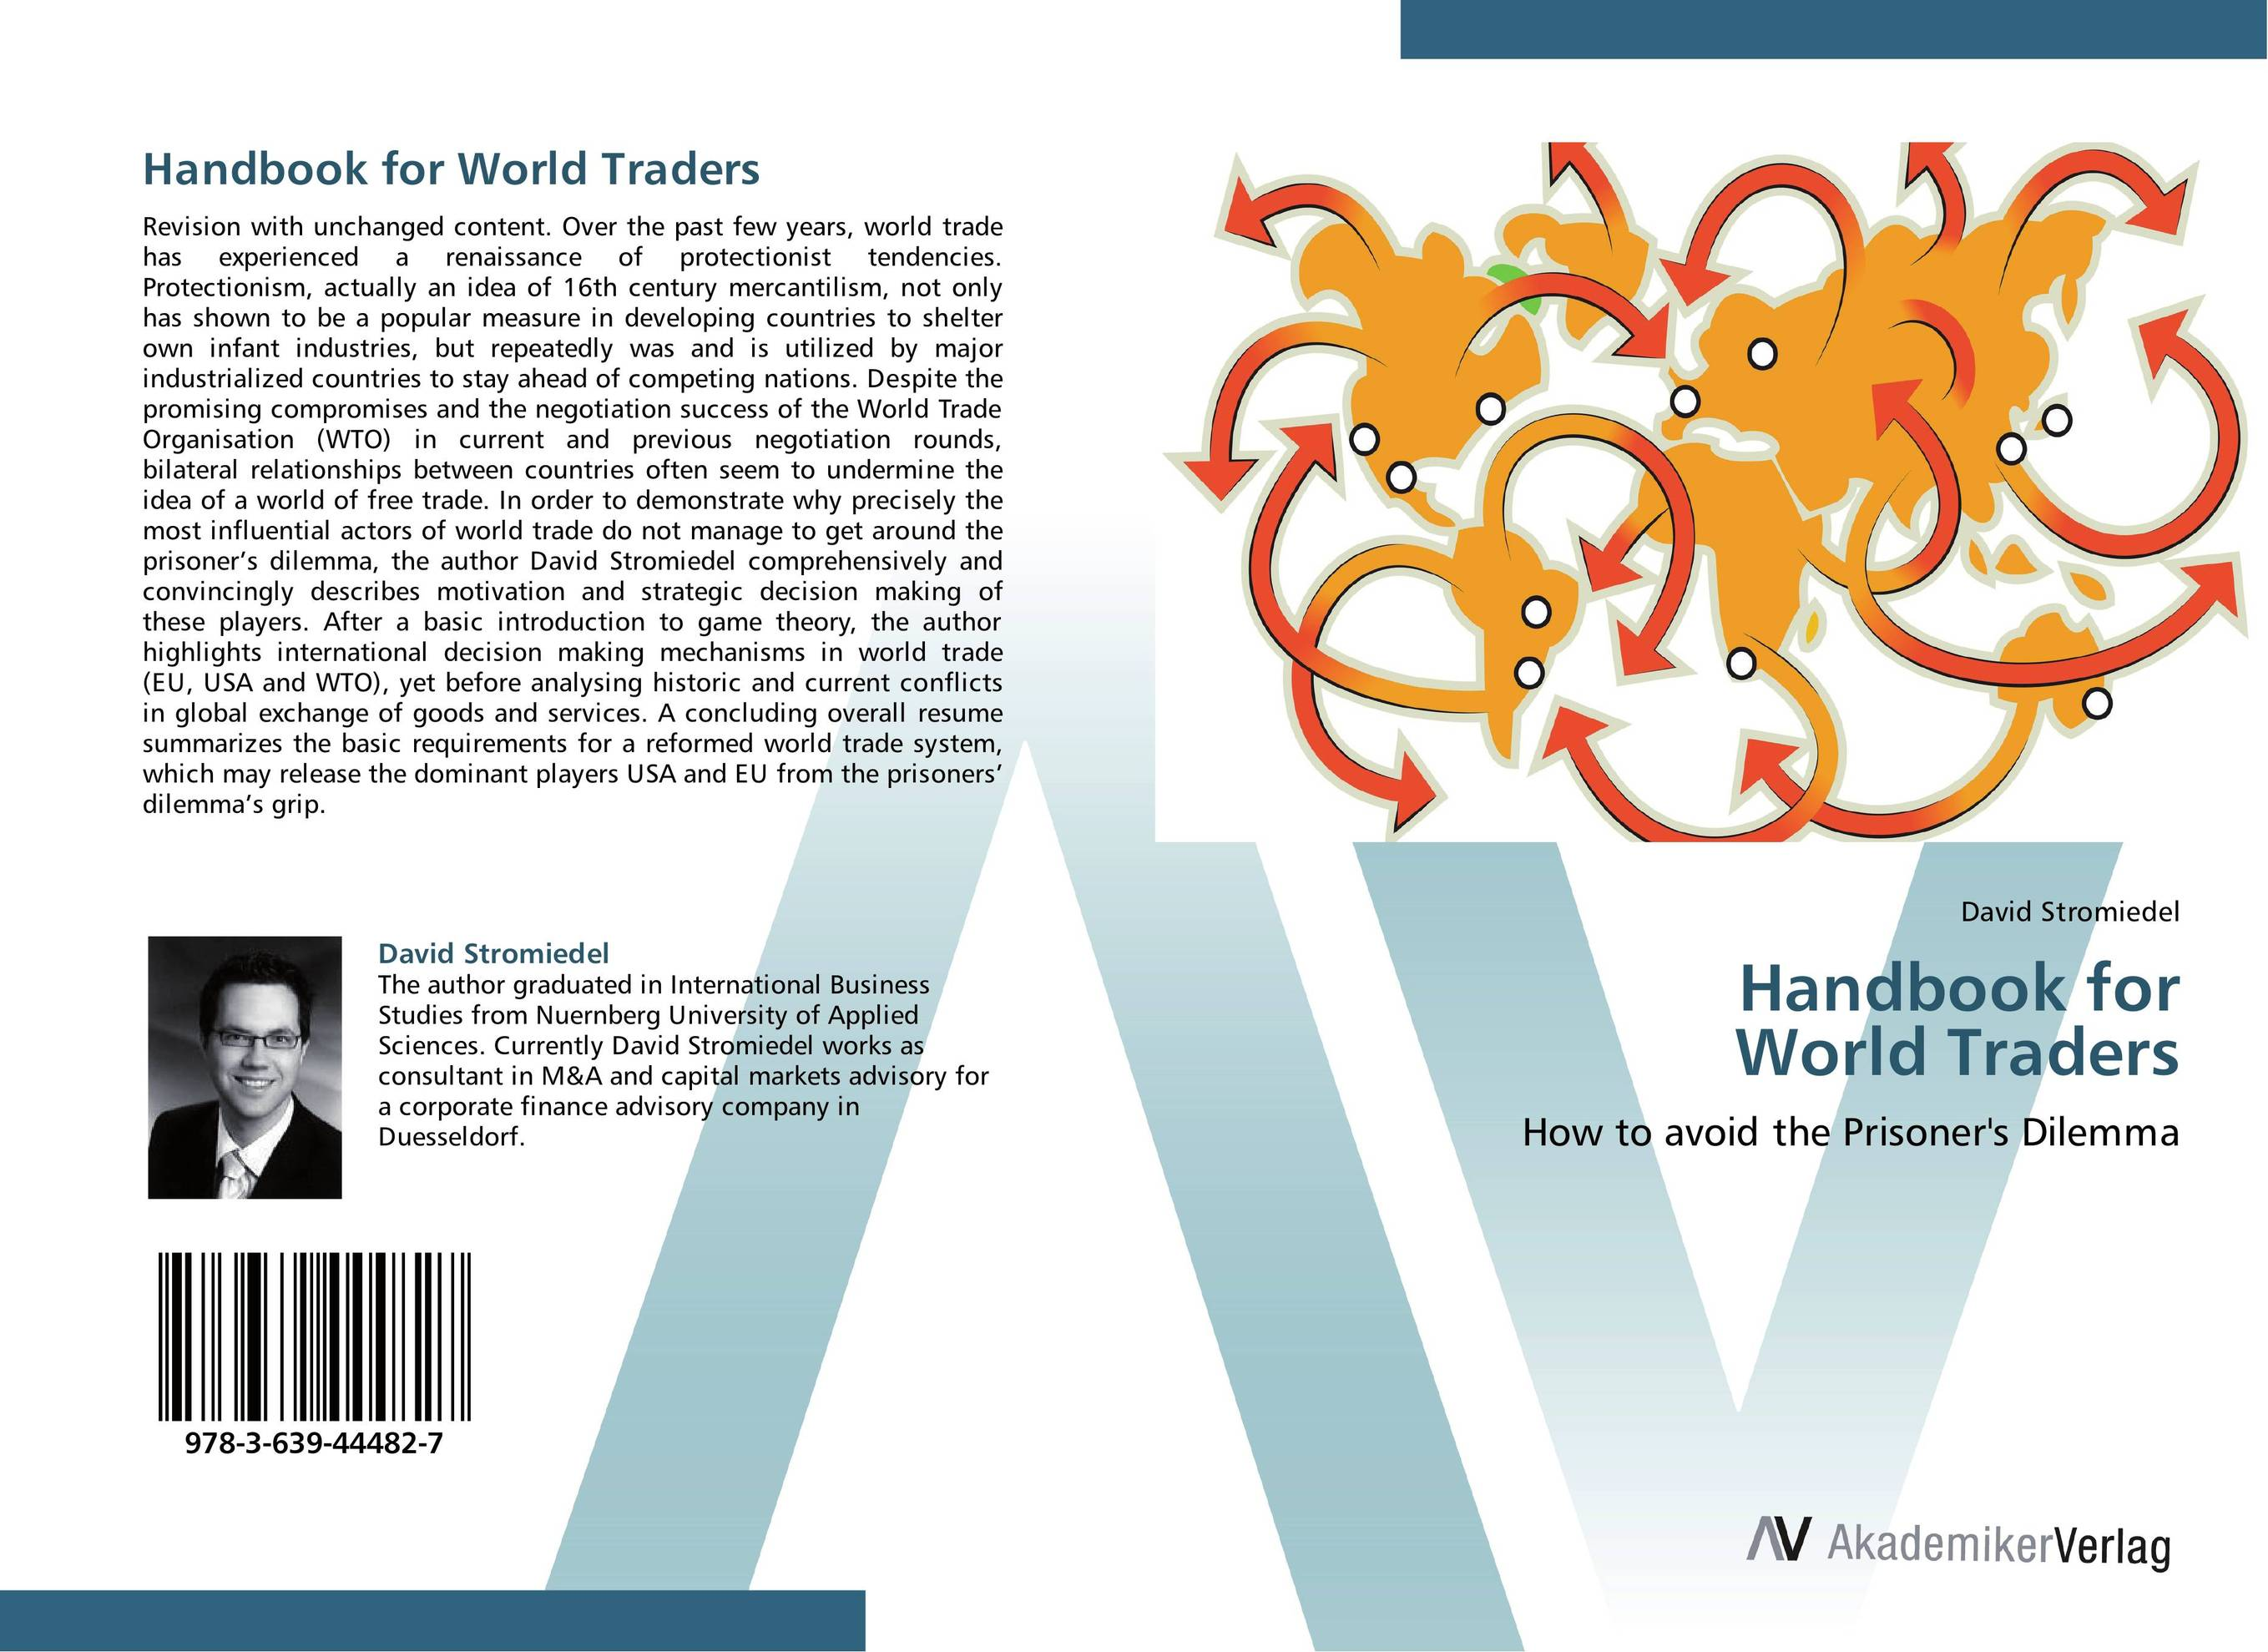 Handbook for World Traders casio str 300c 1v